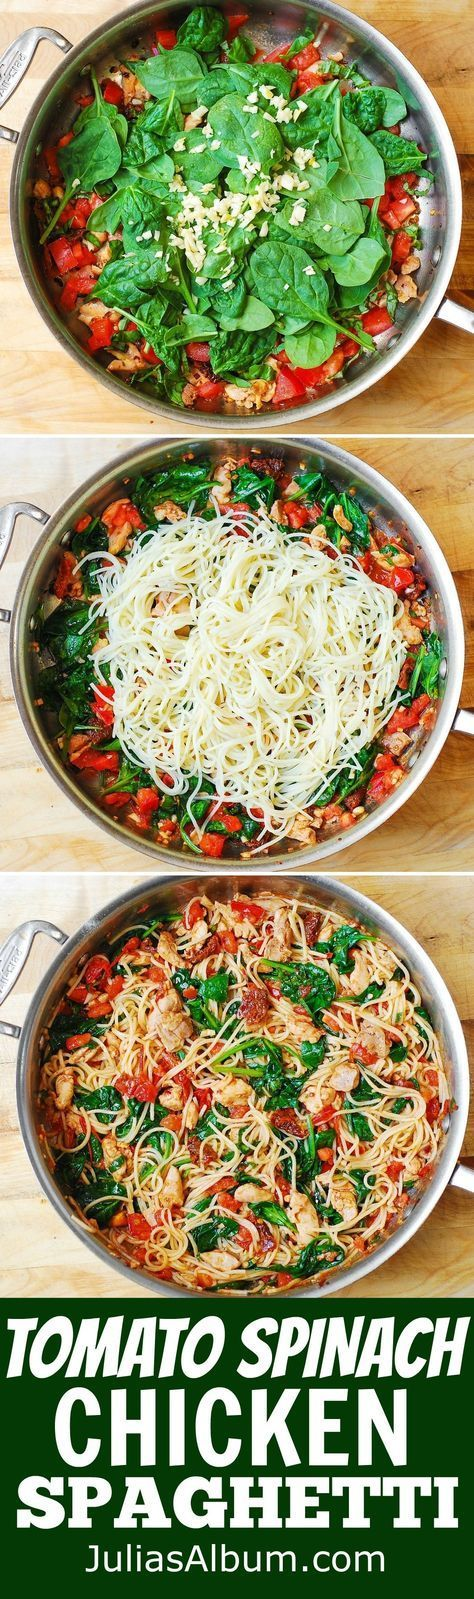 Tomato Basil & Spinach Chicken Spaghetti – healthy, light, Mediterranean style dinner, packed with vegetables, protein and good oils. Delicious comfort